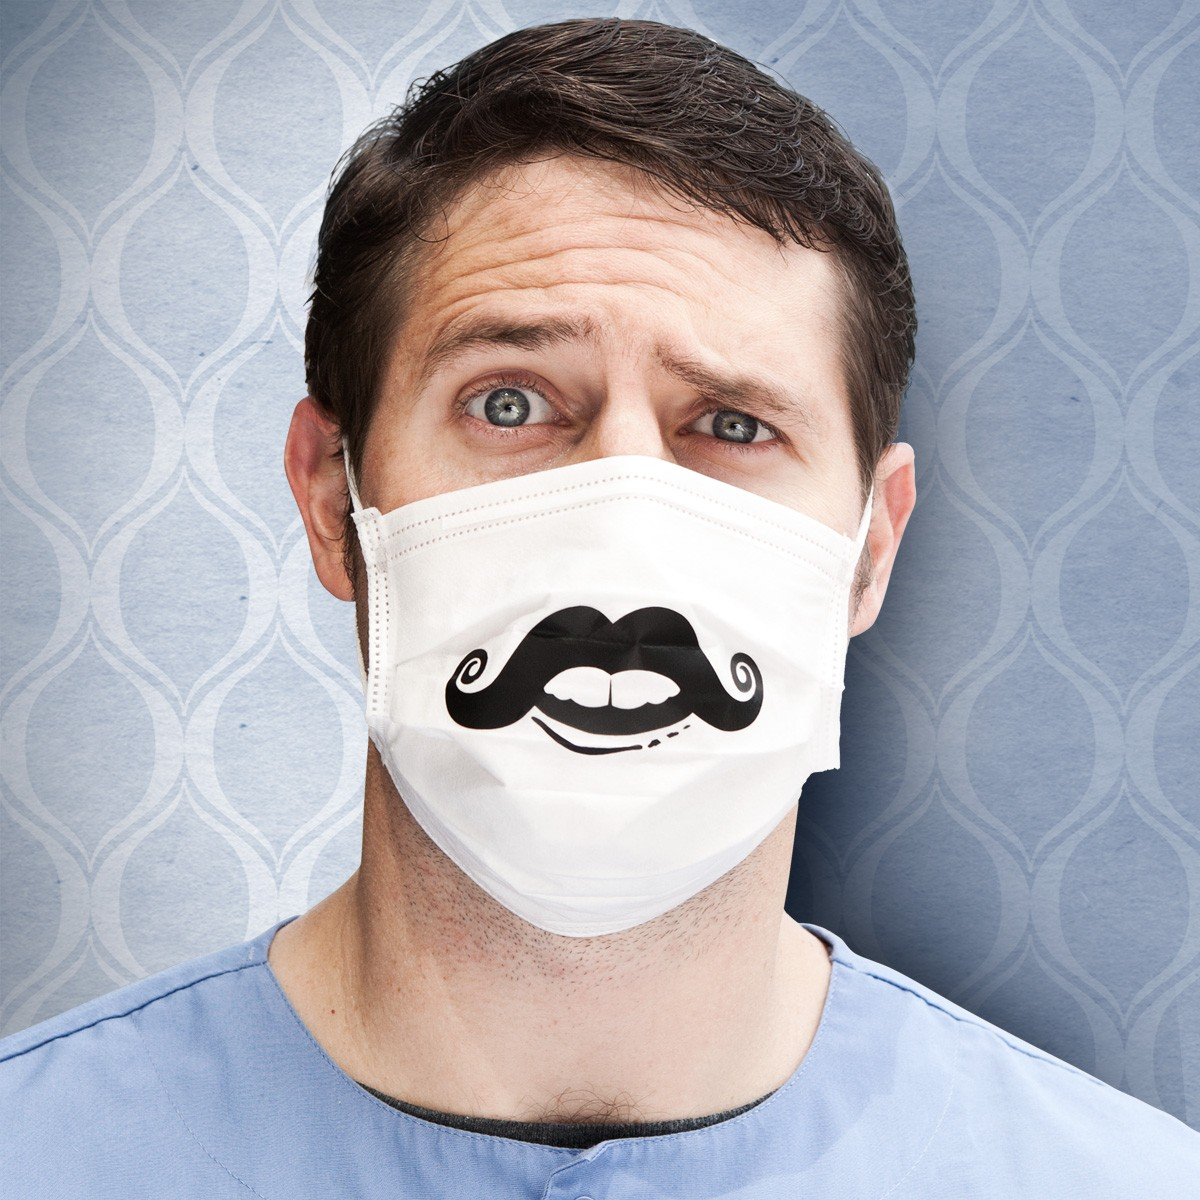 designer surgical mask